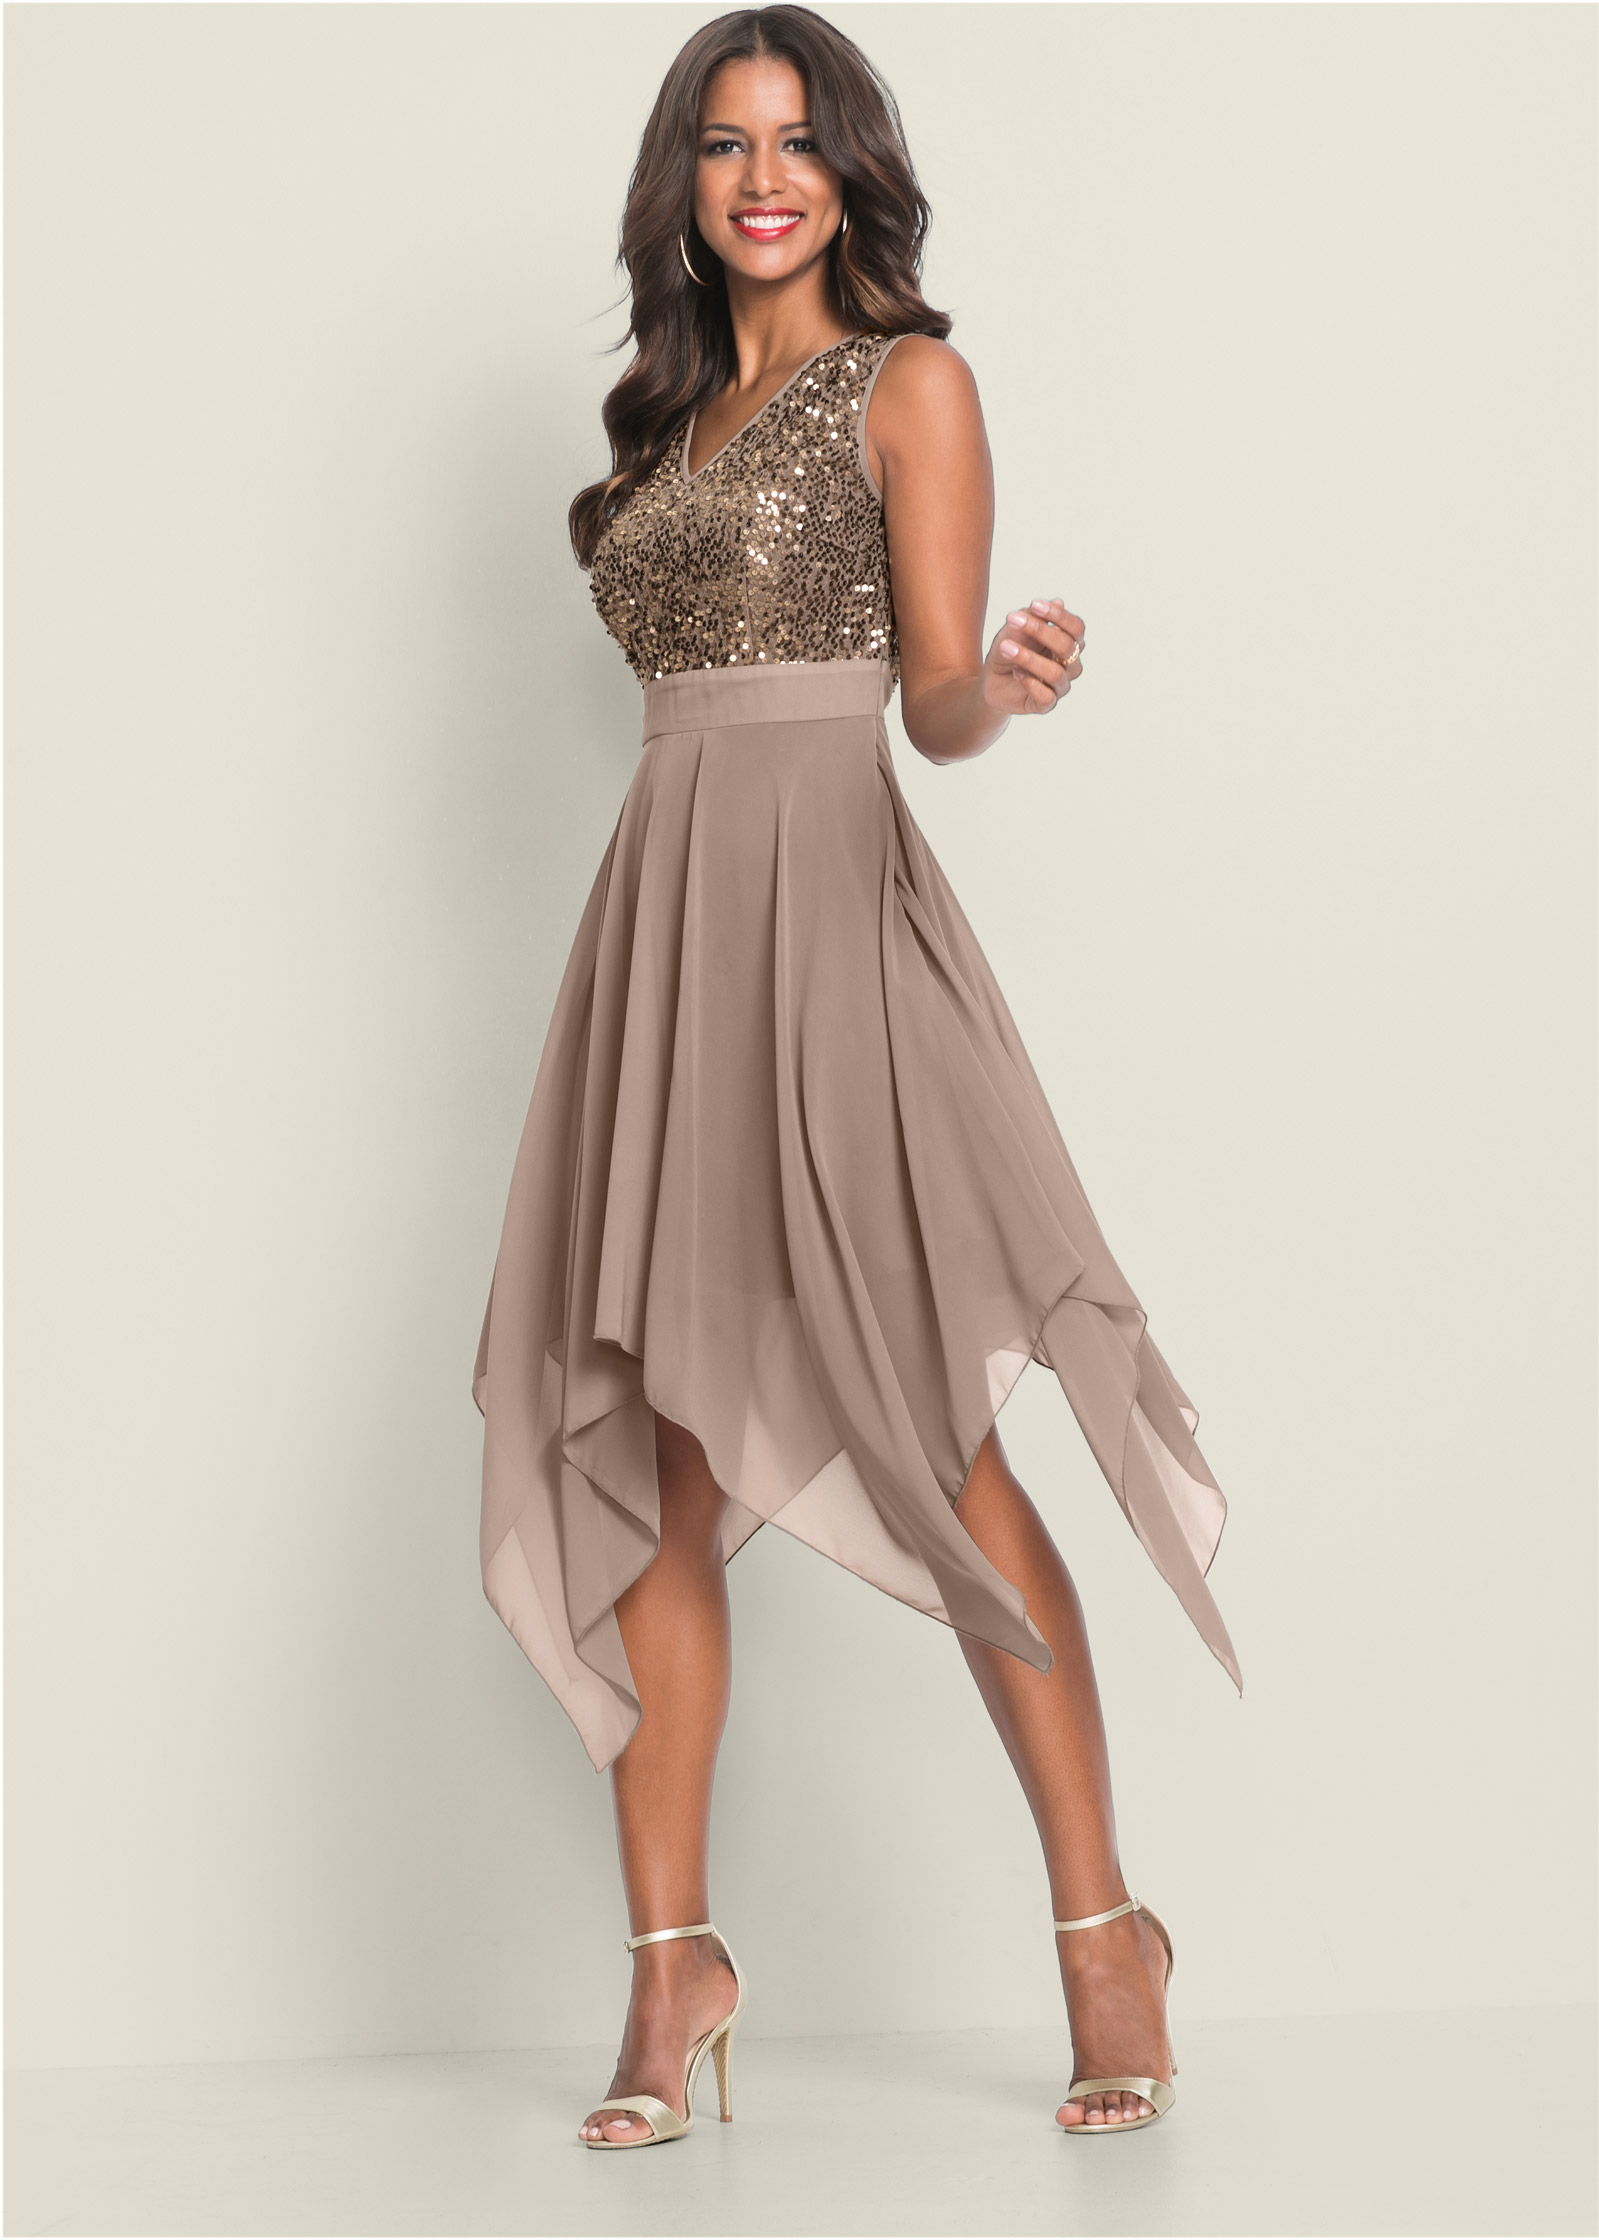 Where to get a cute party   dresses